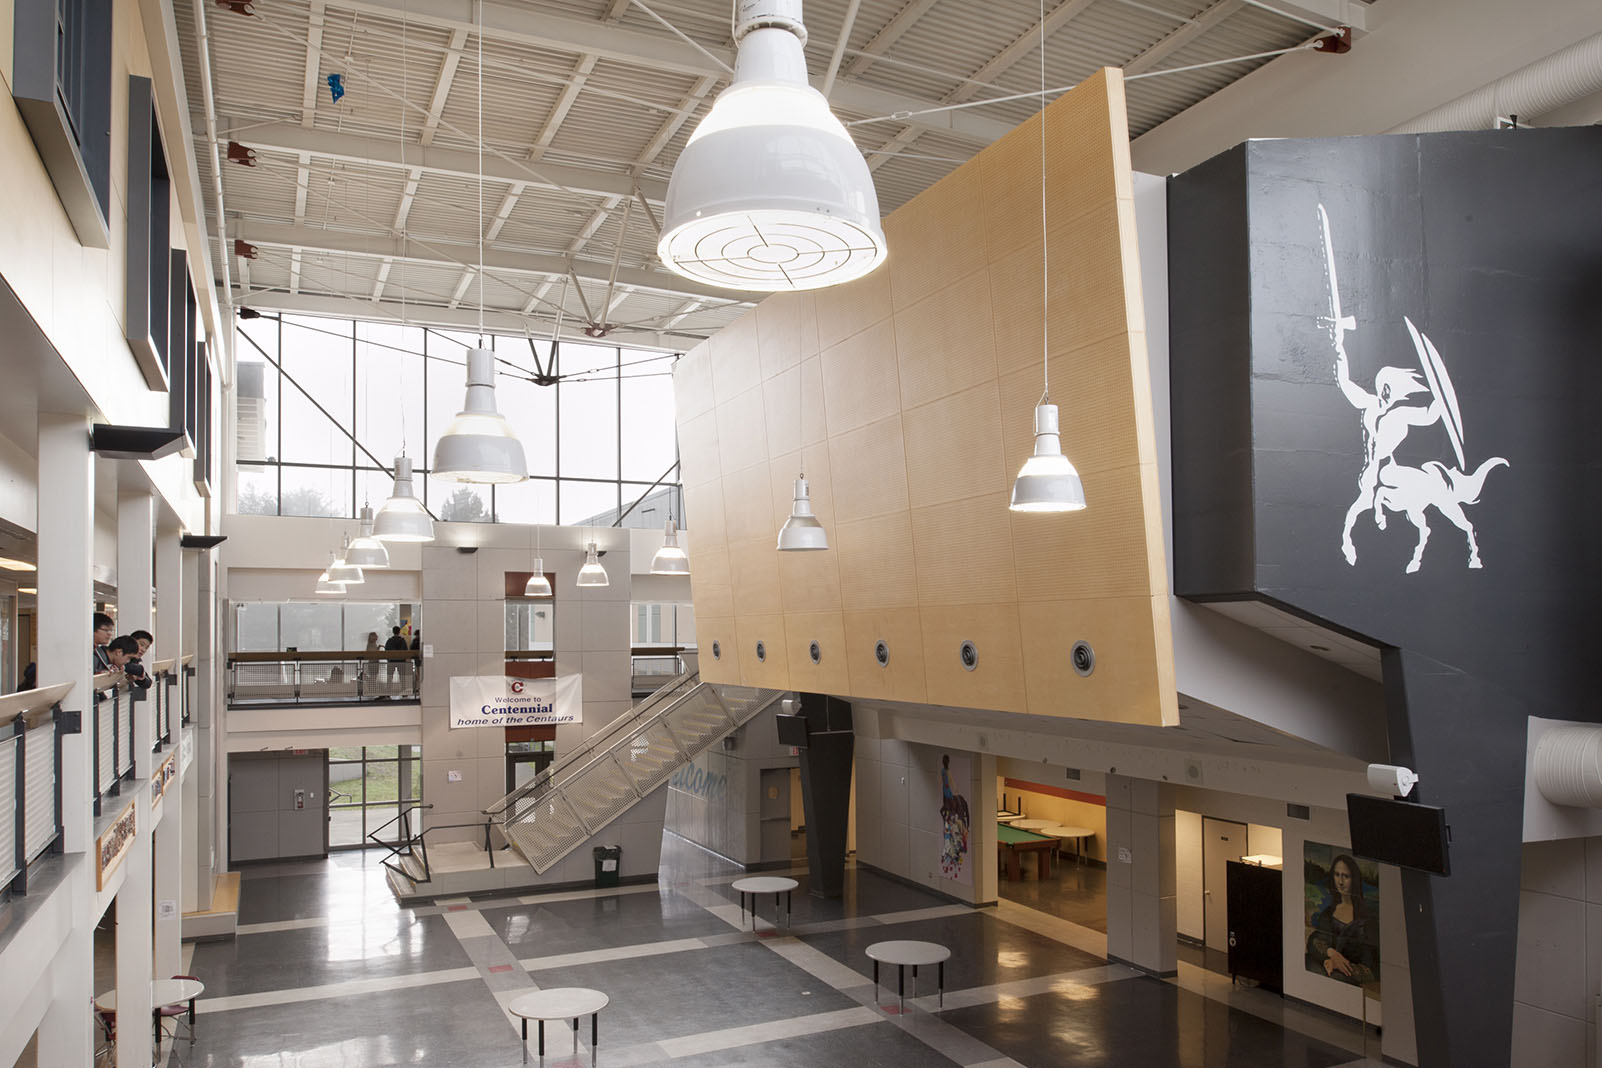 Centennial Secondary Seismic Upgrade — After